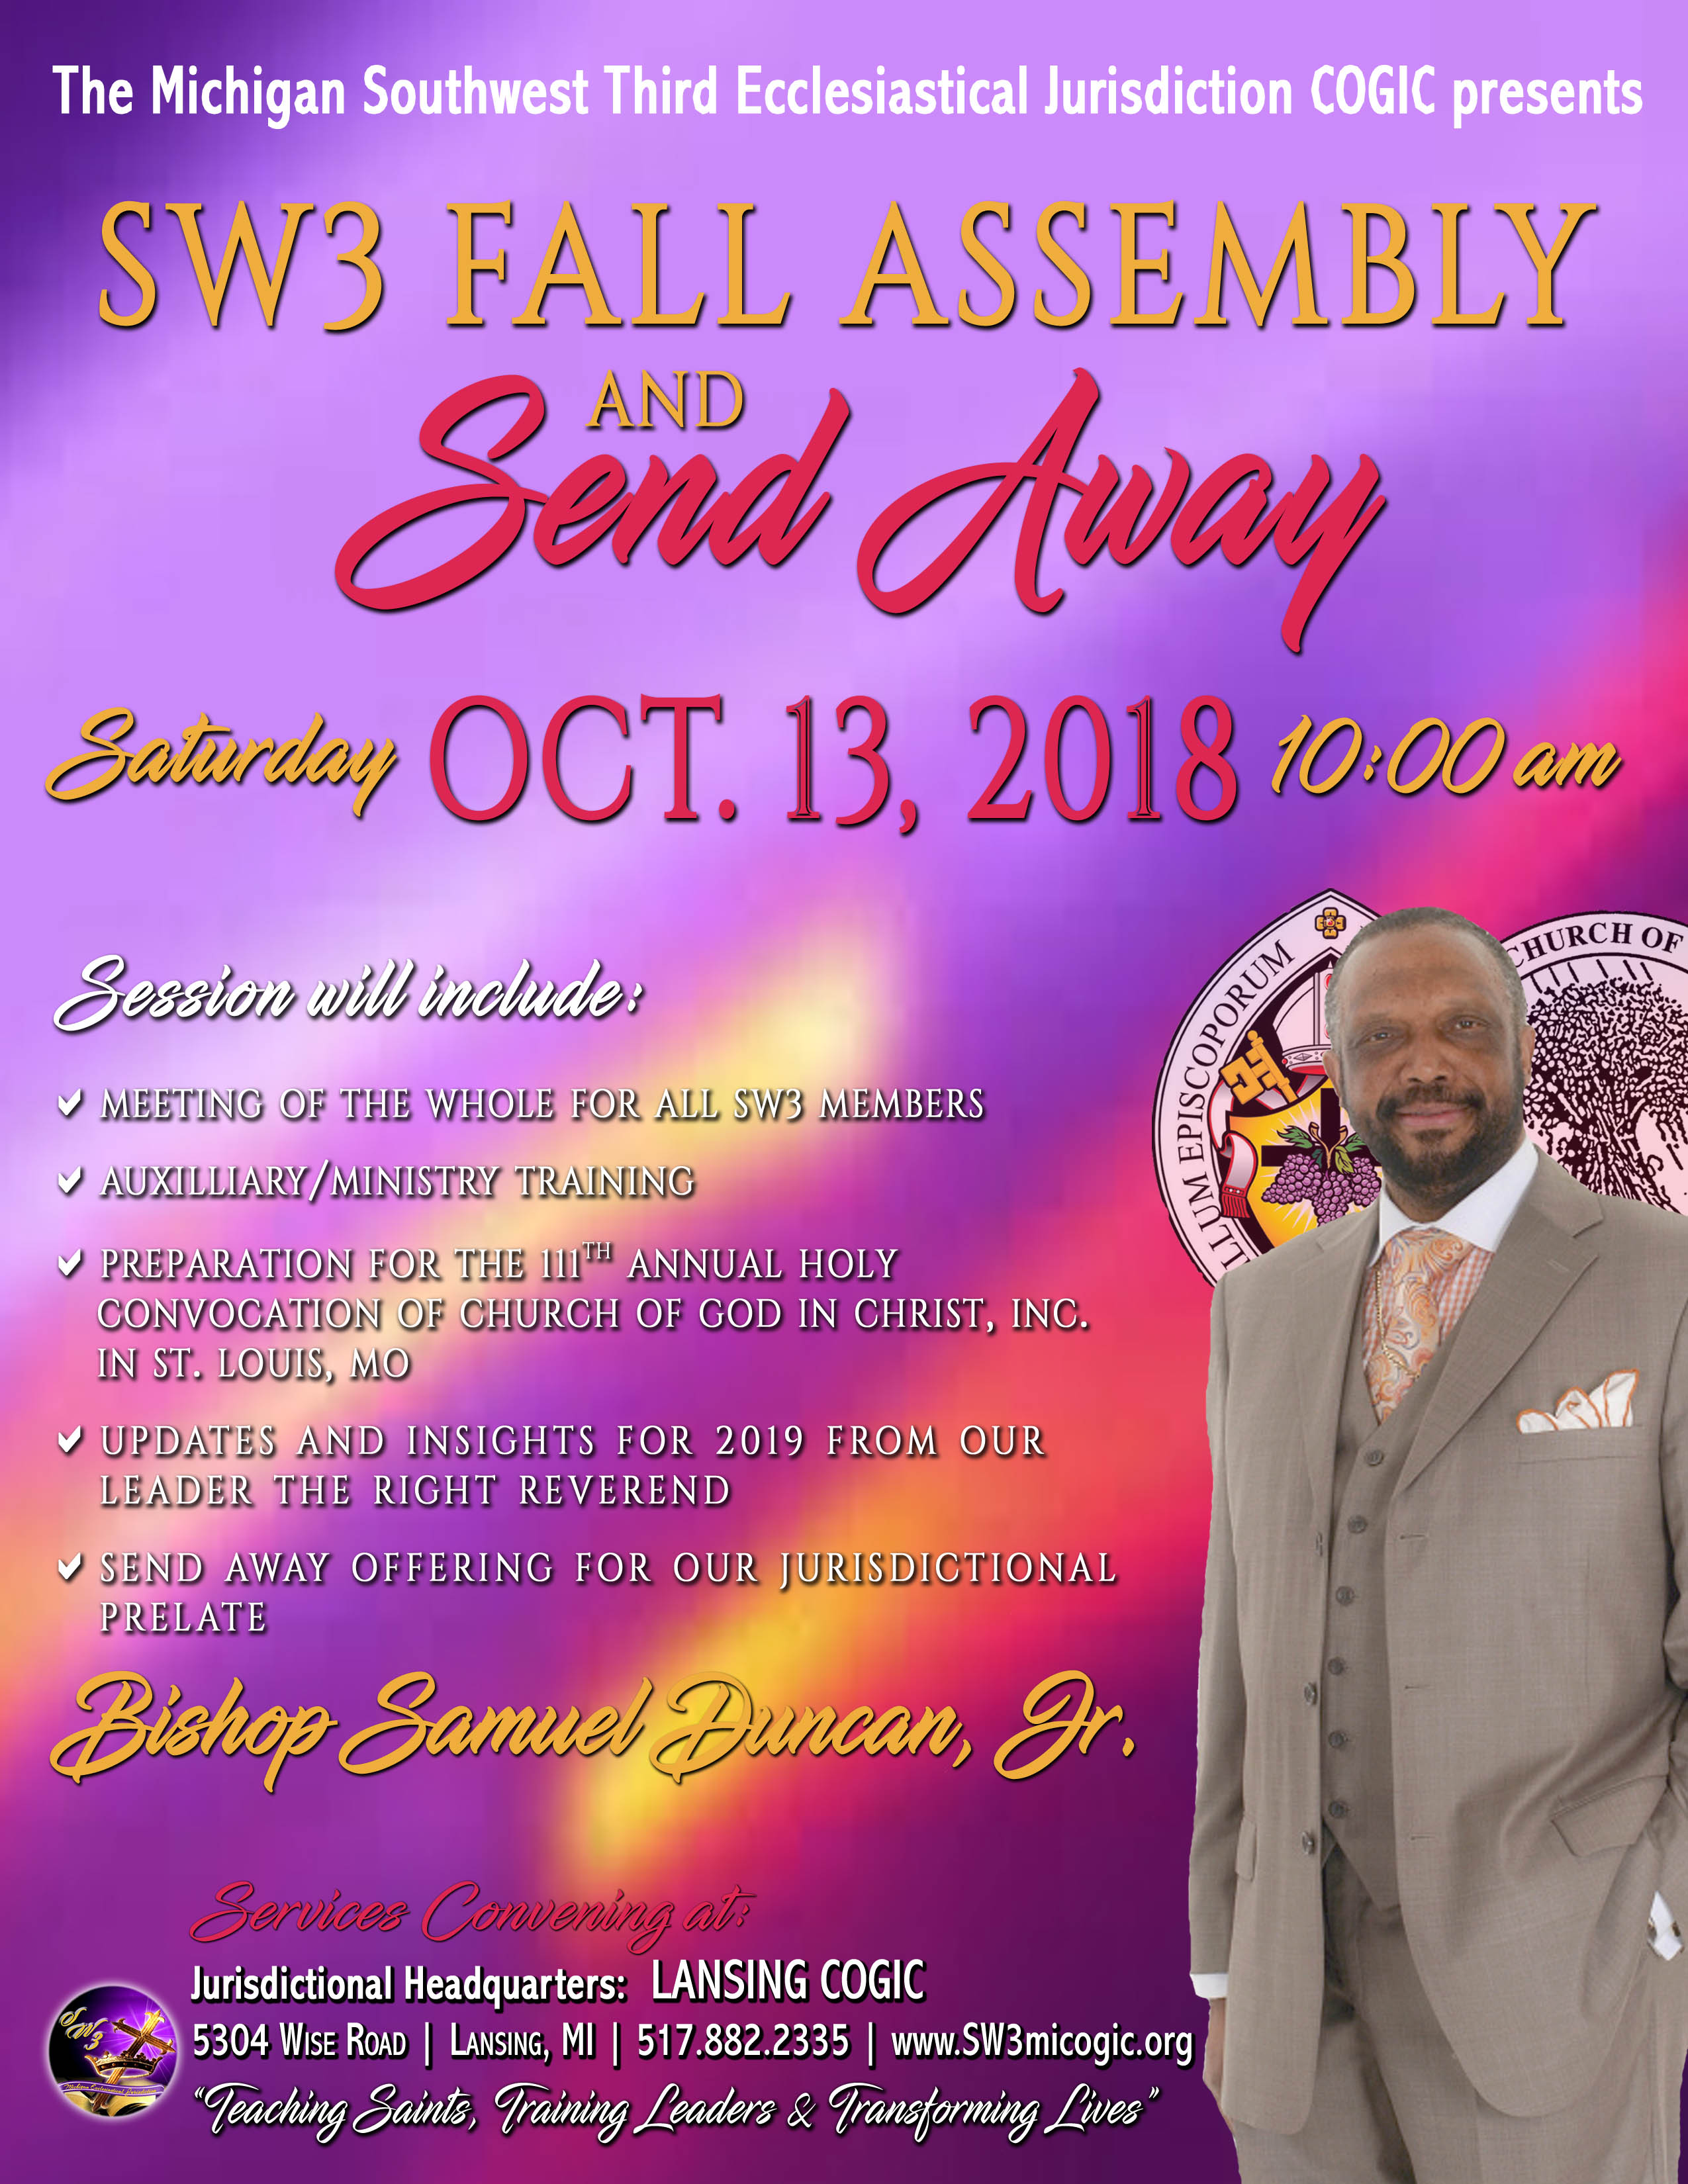 Lansing COGIC, SW3 & the Holy Convocation Happenings